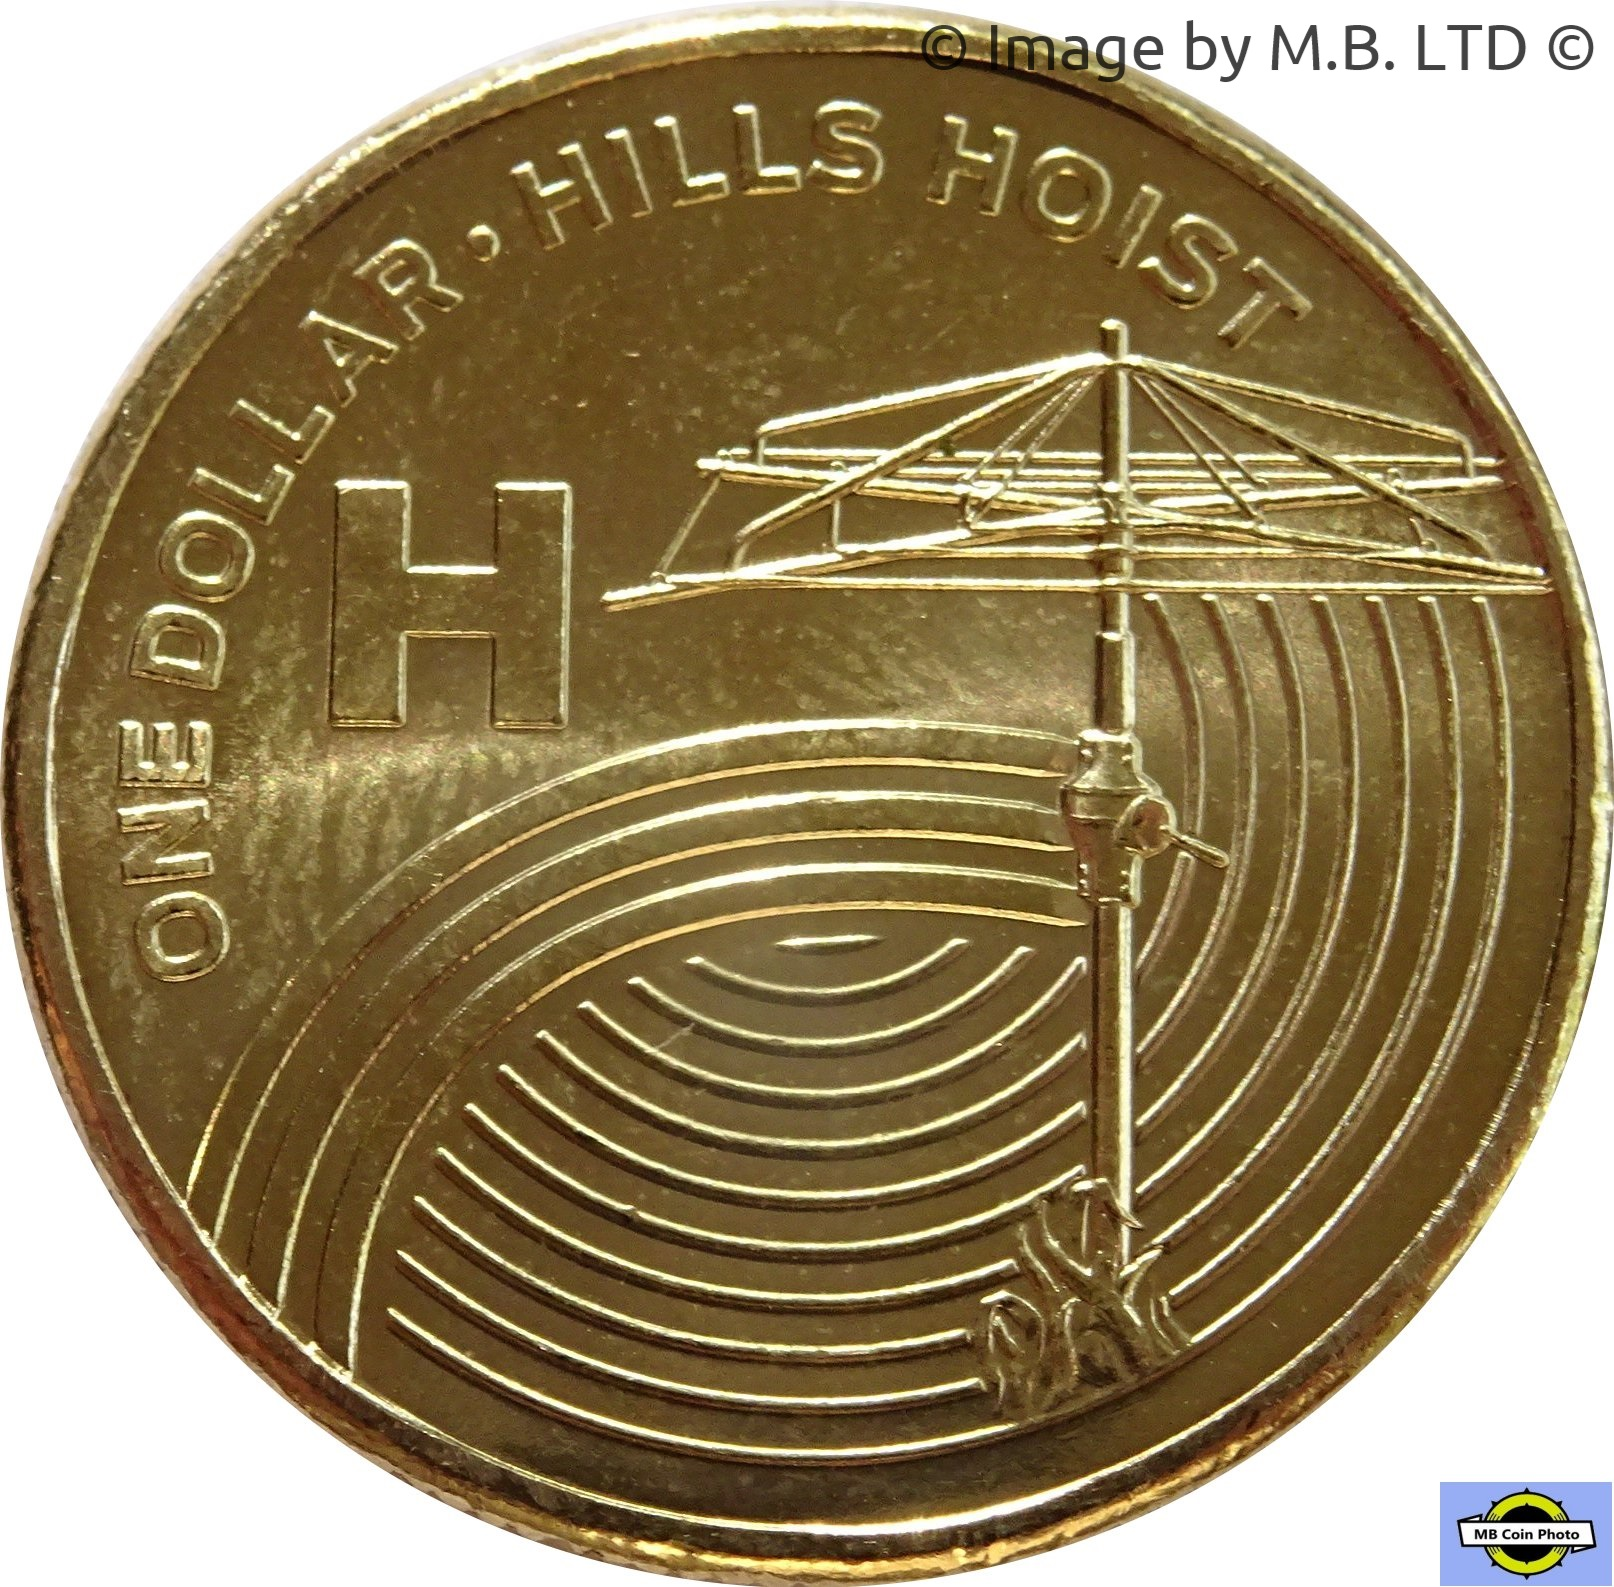 THE GREAT AUSSIE COIN HUNT 2019 ONE DOLLAR H for Hills Hoist uncirculated